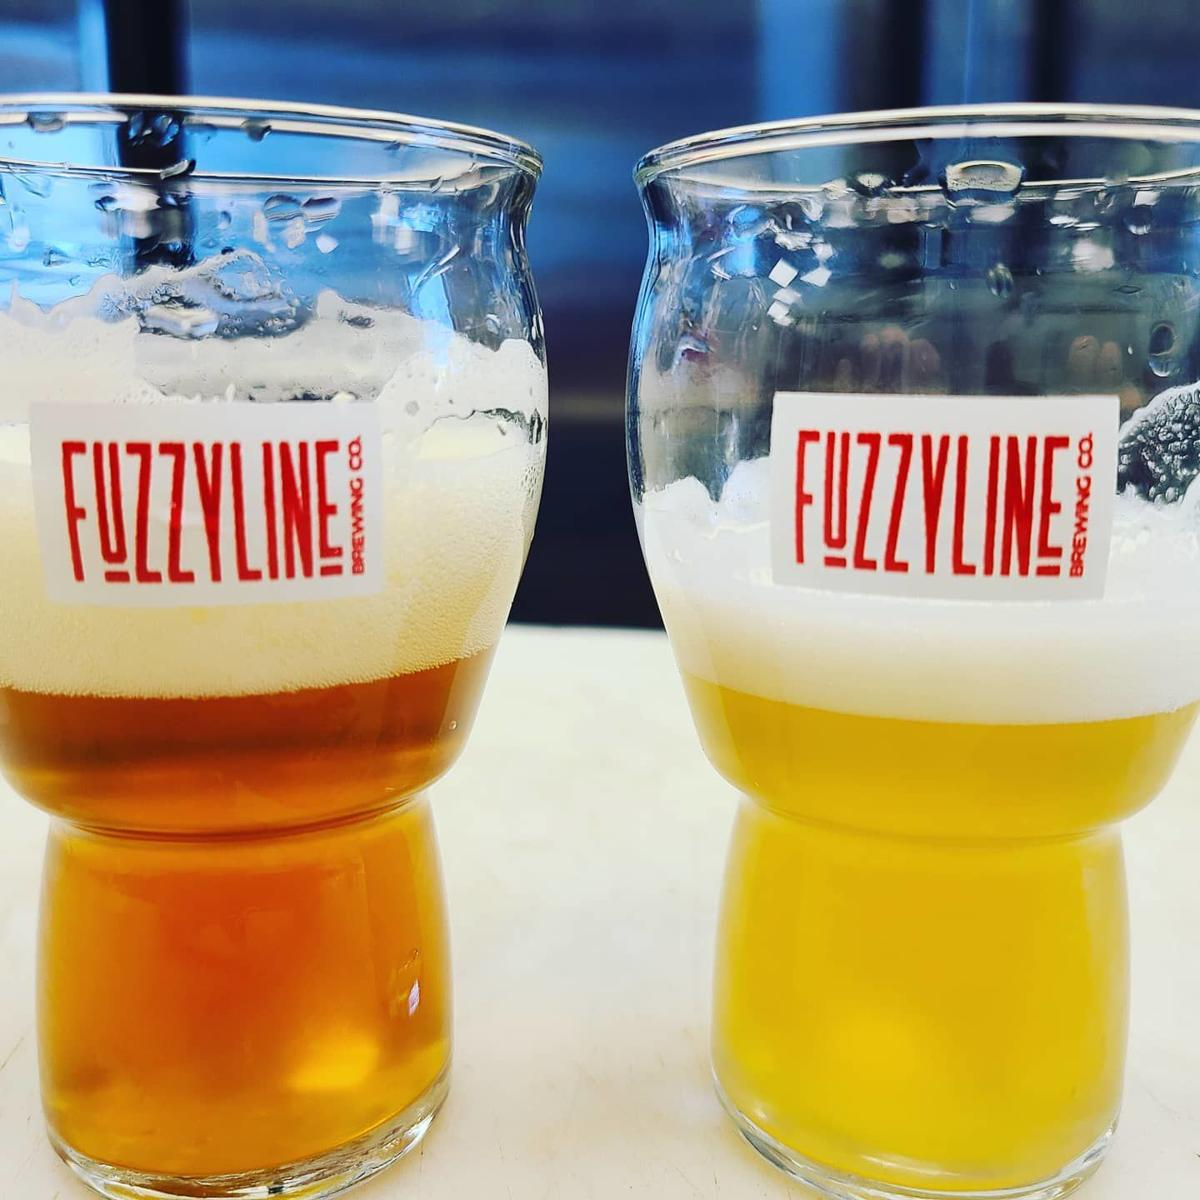 Fuzzyline Brewing Co. to open in downtown Highland